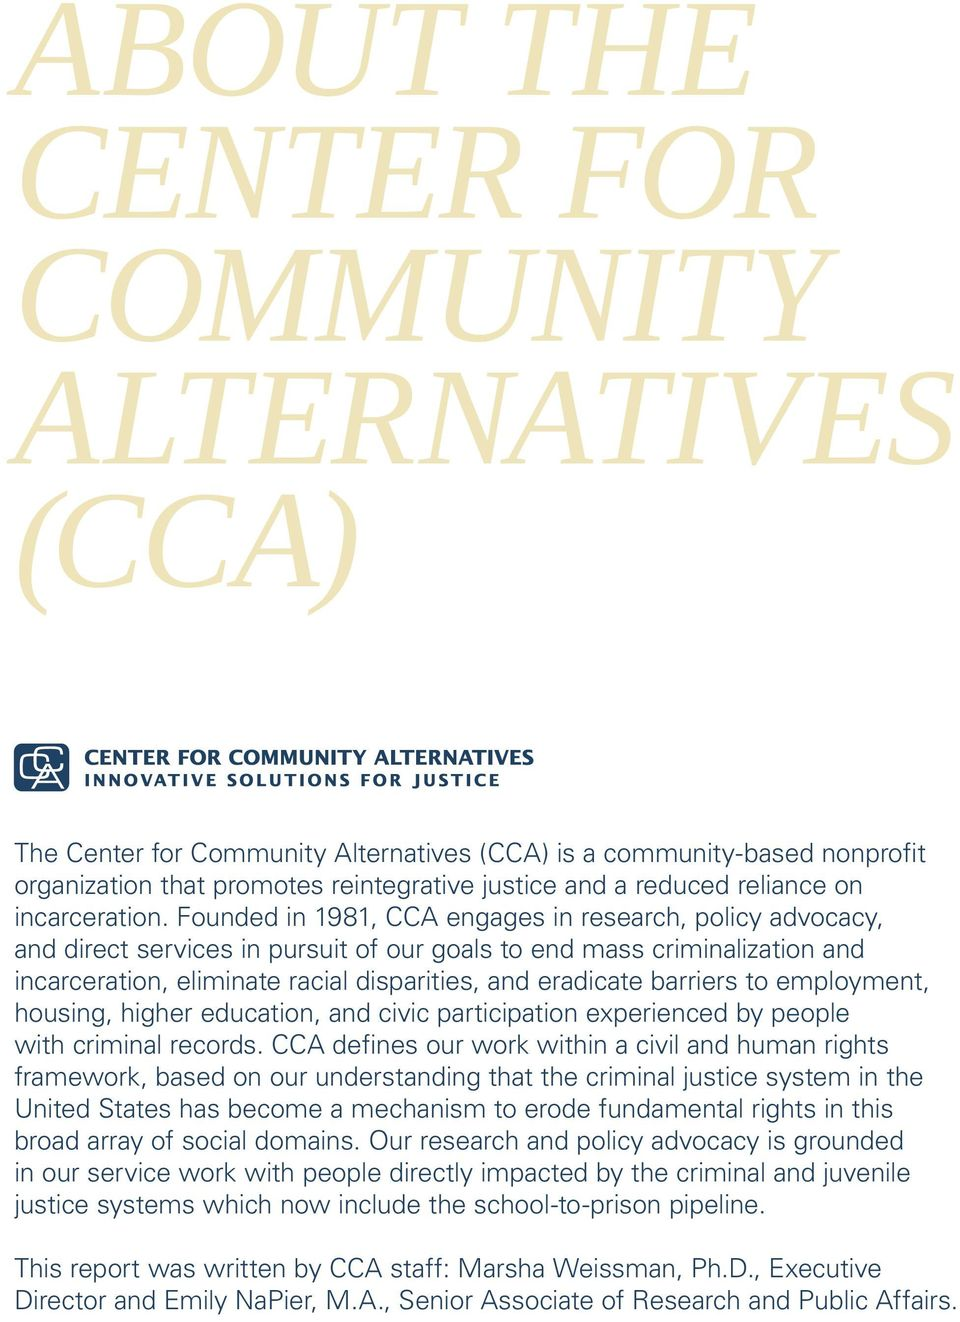 Founded in 1981, CCA engages in research, policy advocacy, and direct services in pursuit of our goals to end mass criminalization and incarceration, eliminate racial disparities, and eradicate